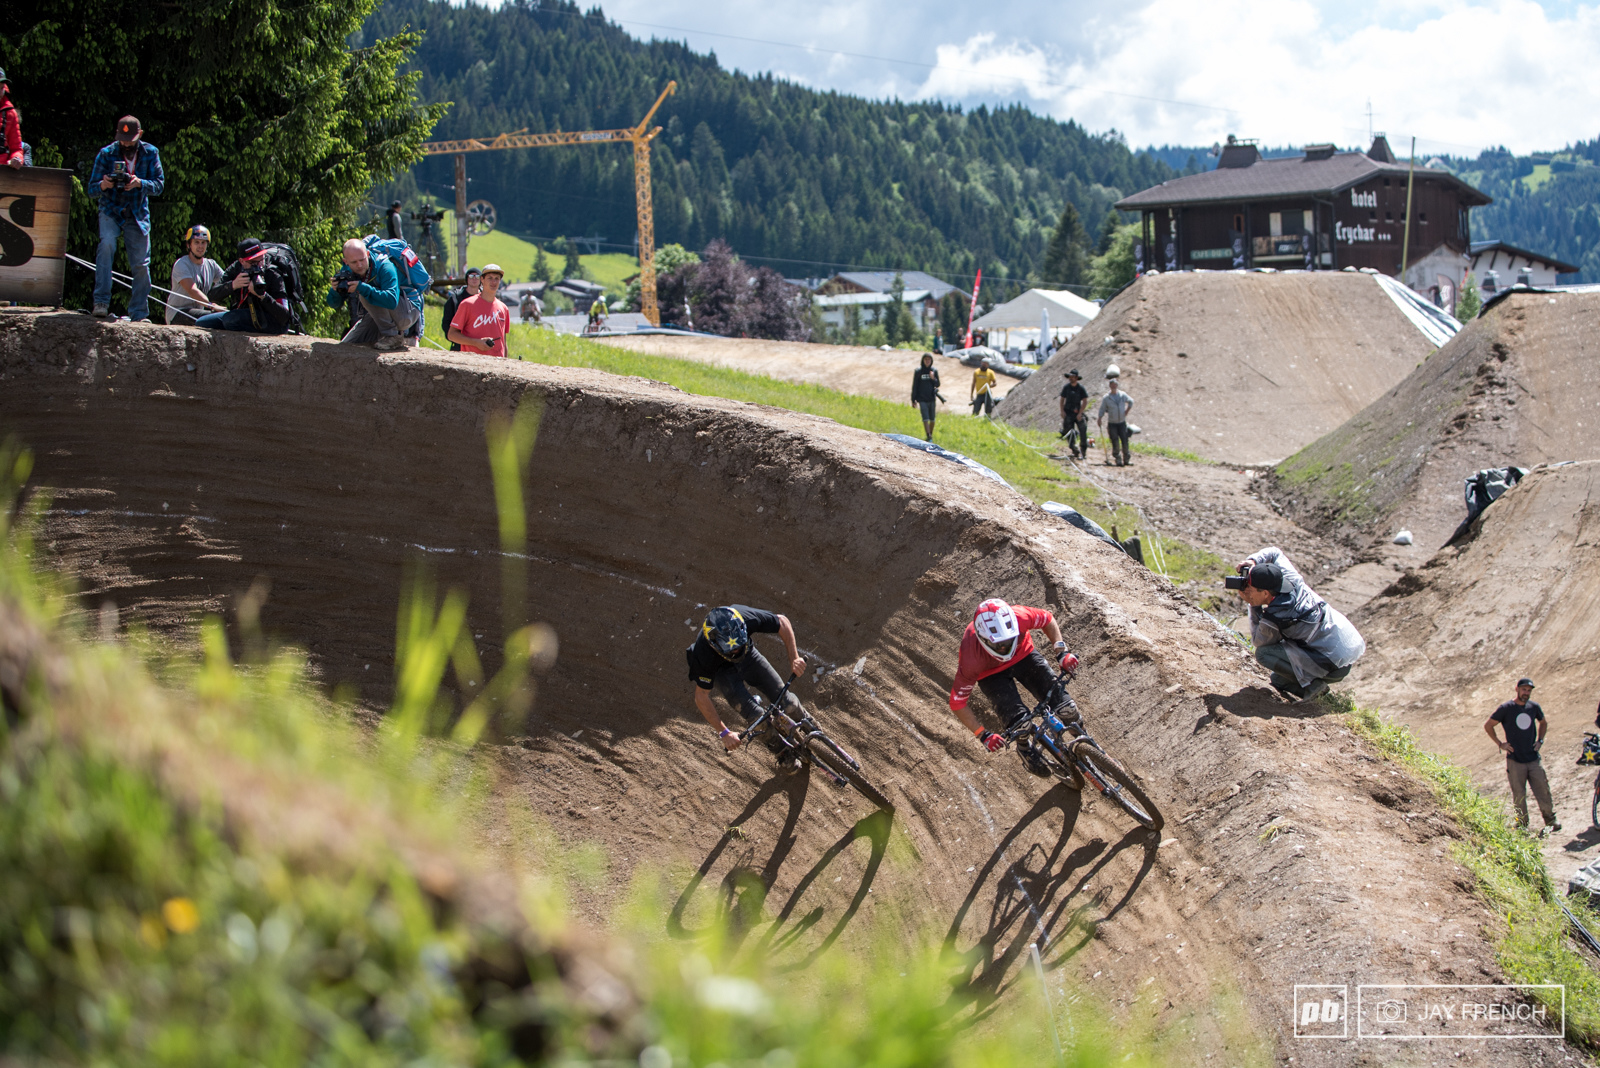 Shark Attack Dual Speed amp Style Finals - Crankworx Les Gets 2016